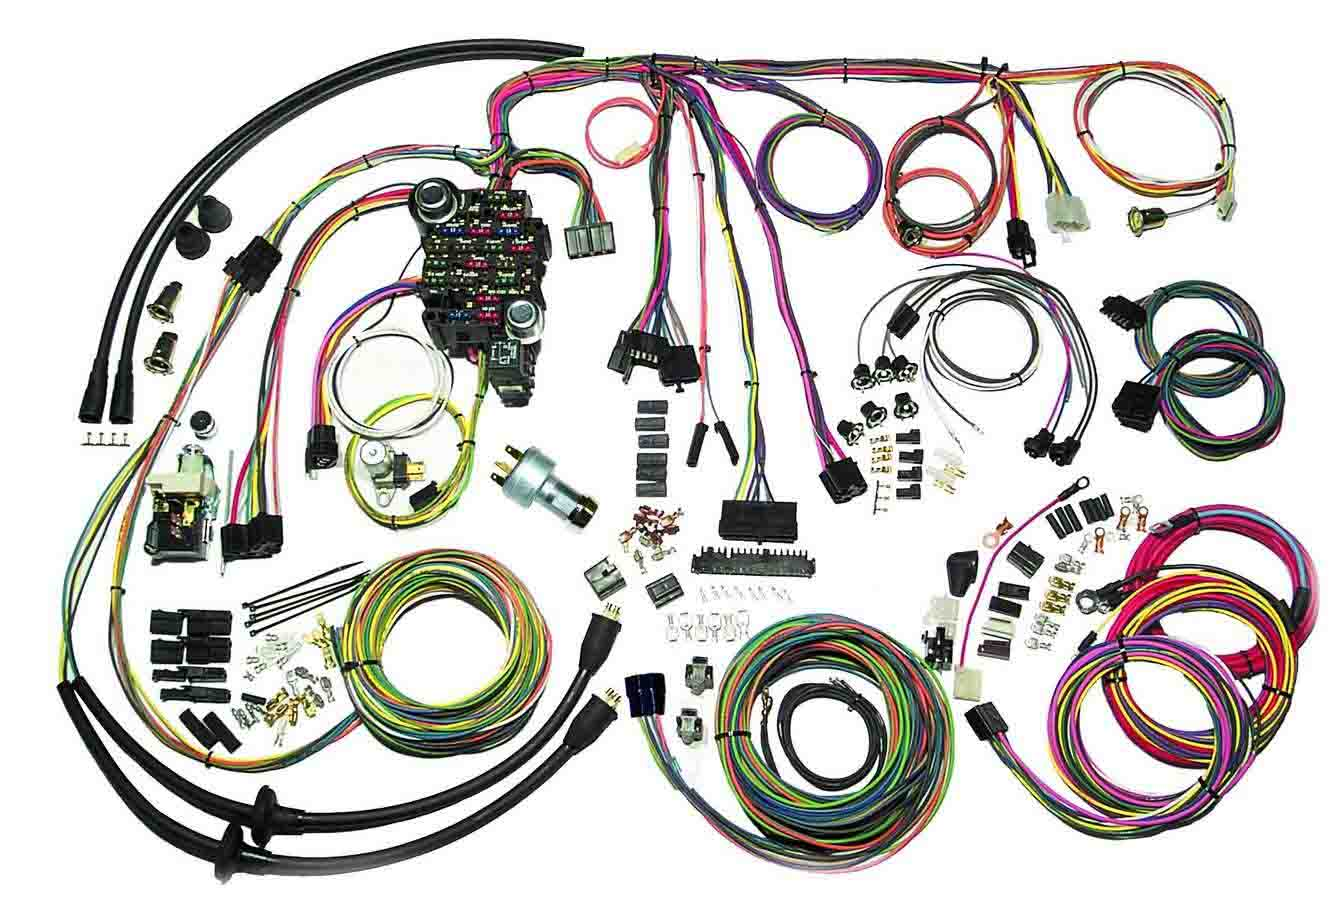 1957 Chevy Truck Wiring Harness Diagrams 60 Apache Diagram Shop For Harnesses Etheridge Race Parts Mustang